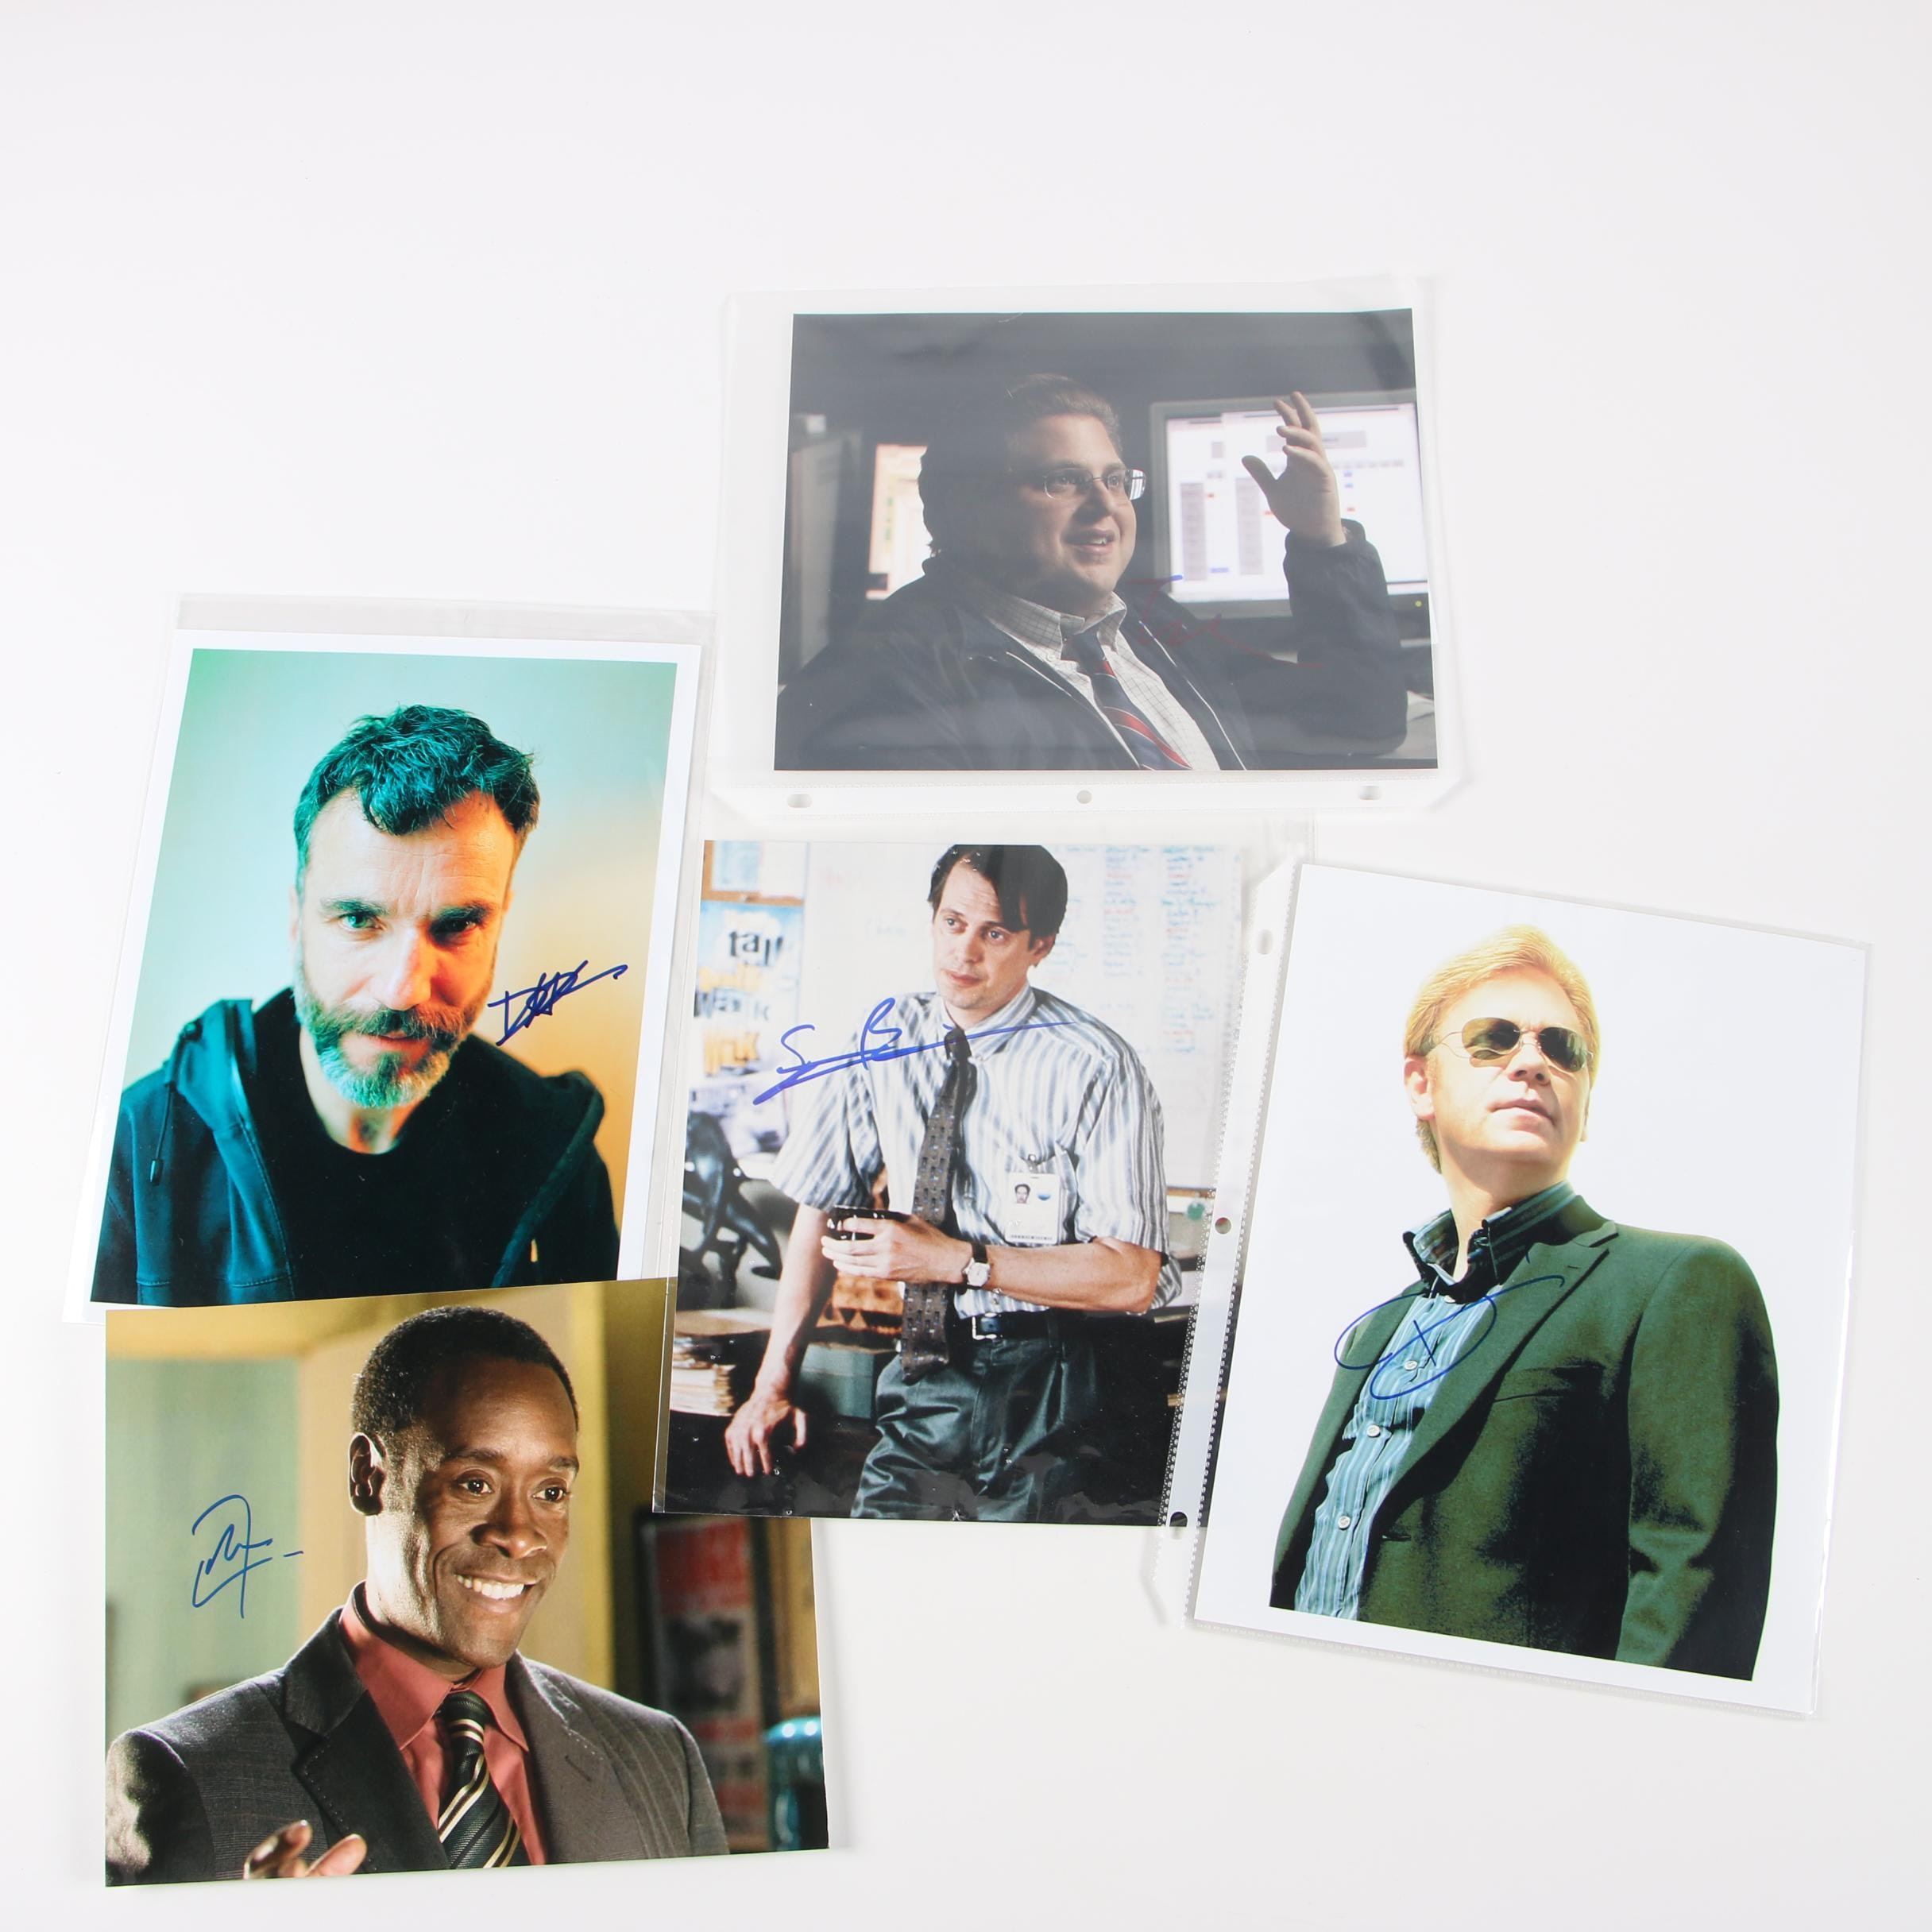 Celebrity Autographed Photos Featuring Daniel Day-Lewis and Steve Buscemi